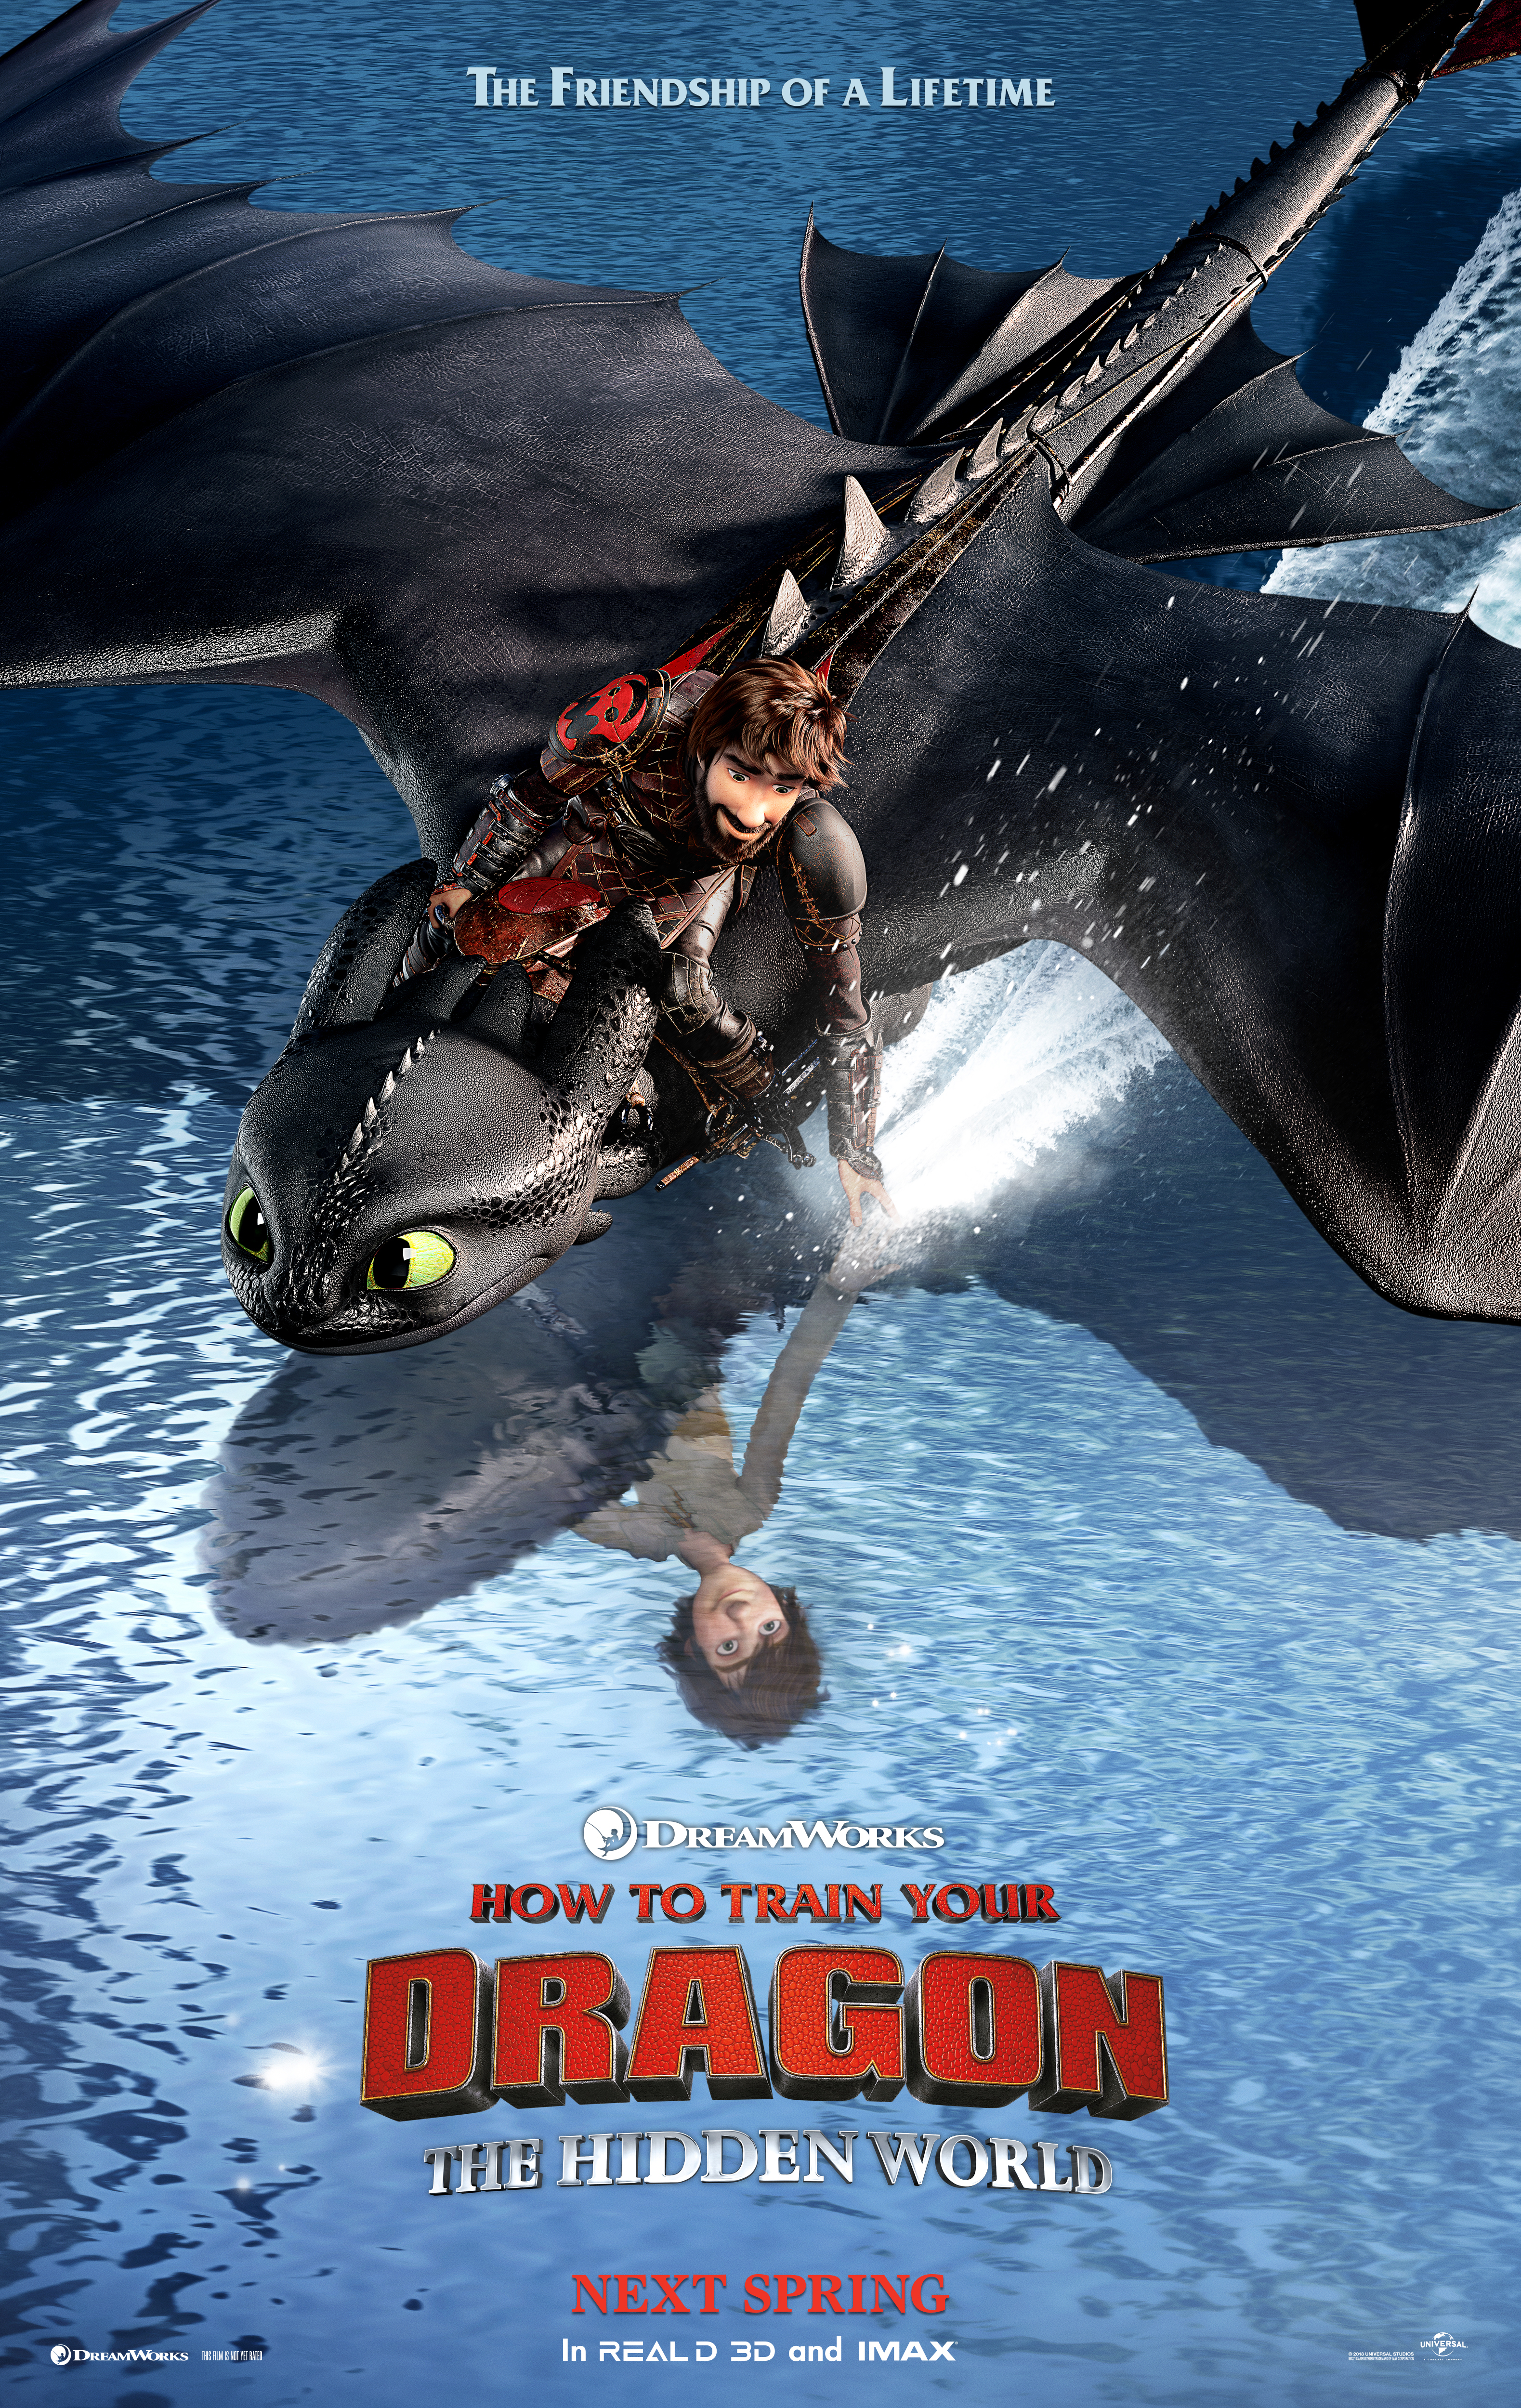 The Film Is Produced By Brad Lewis Ratatouille ANTZ And Bonnie Arnold Toy Story How To Train Your Dragon 2